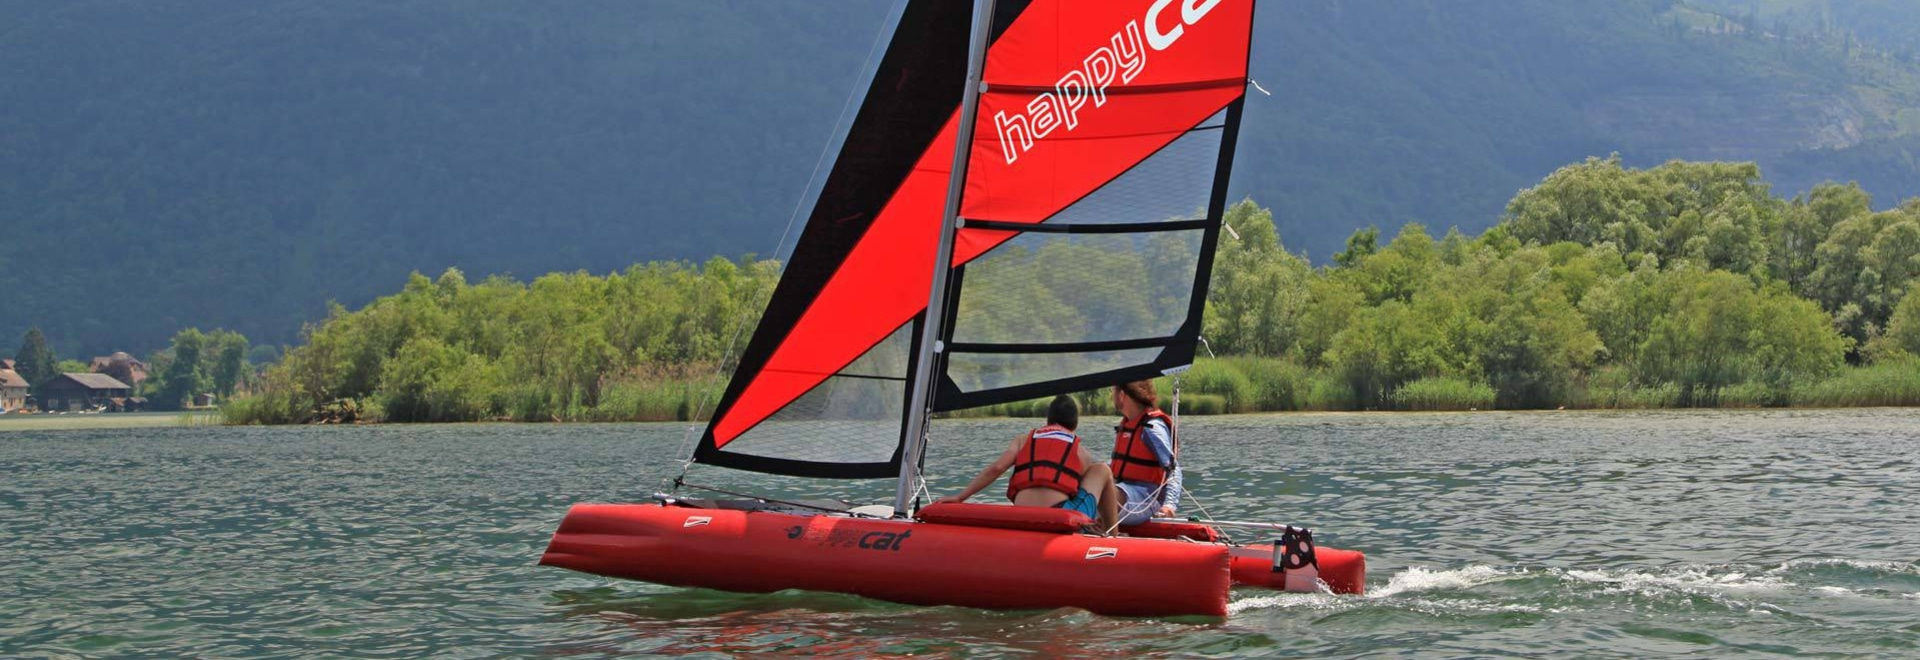 NEW Masthead float for HAPPY CAT portable catamaran